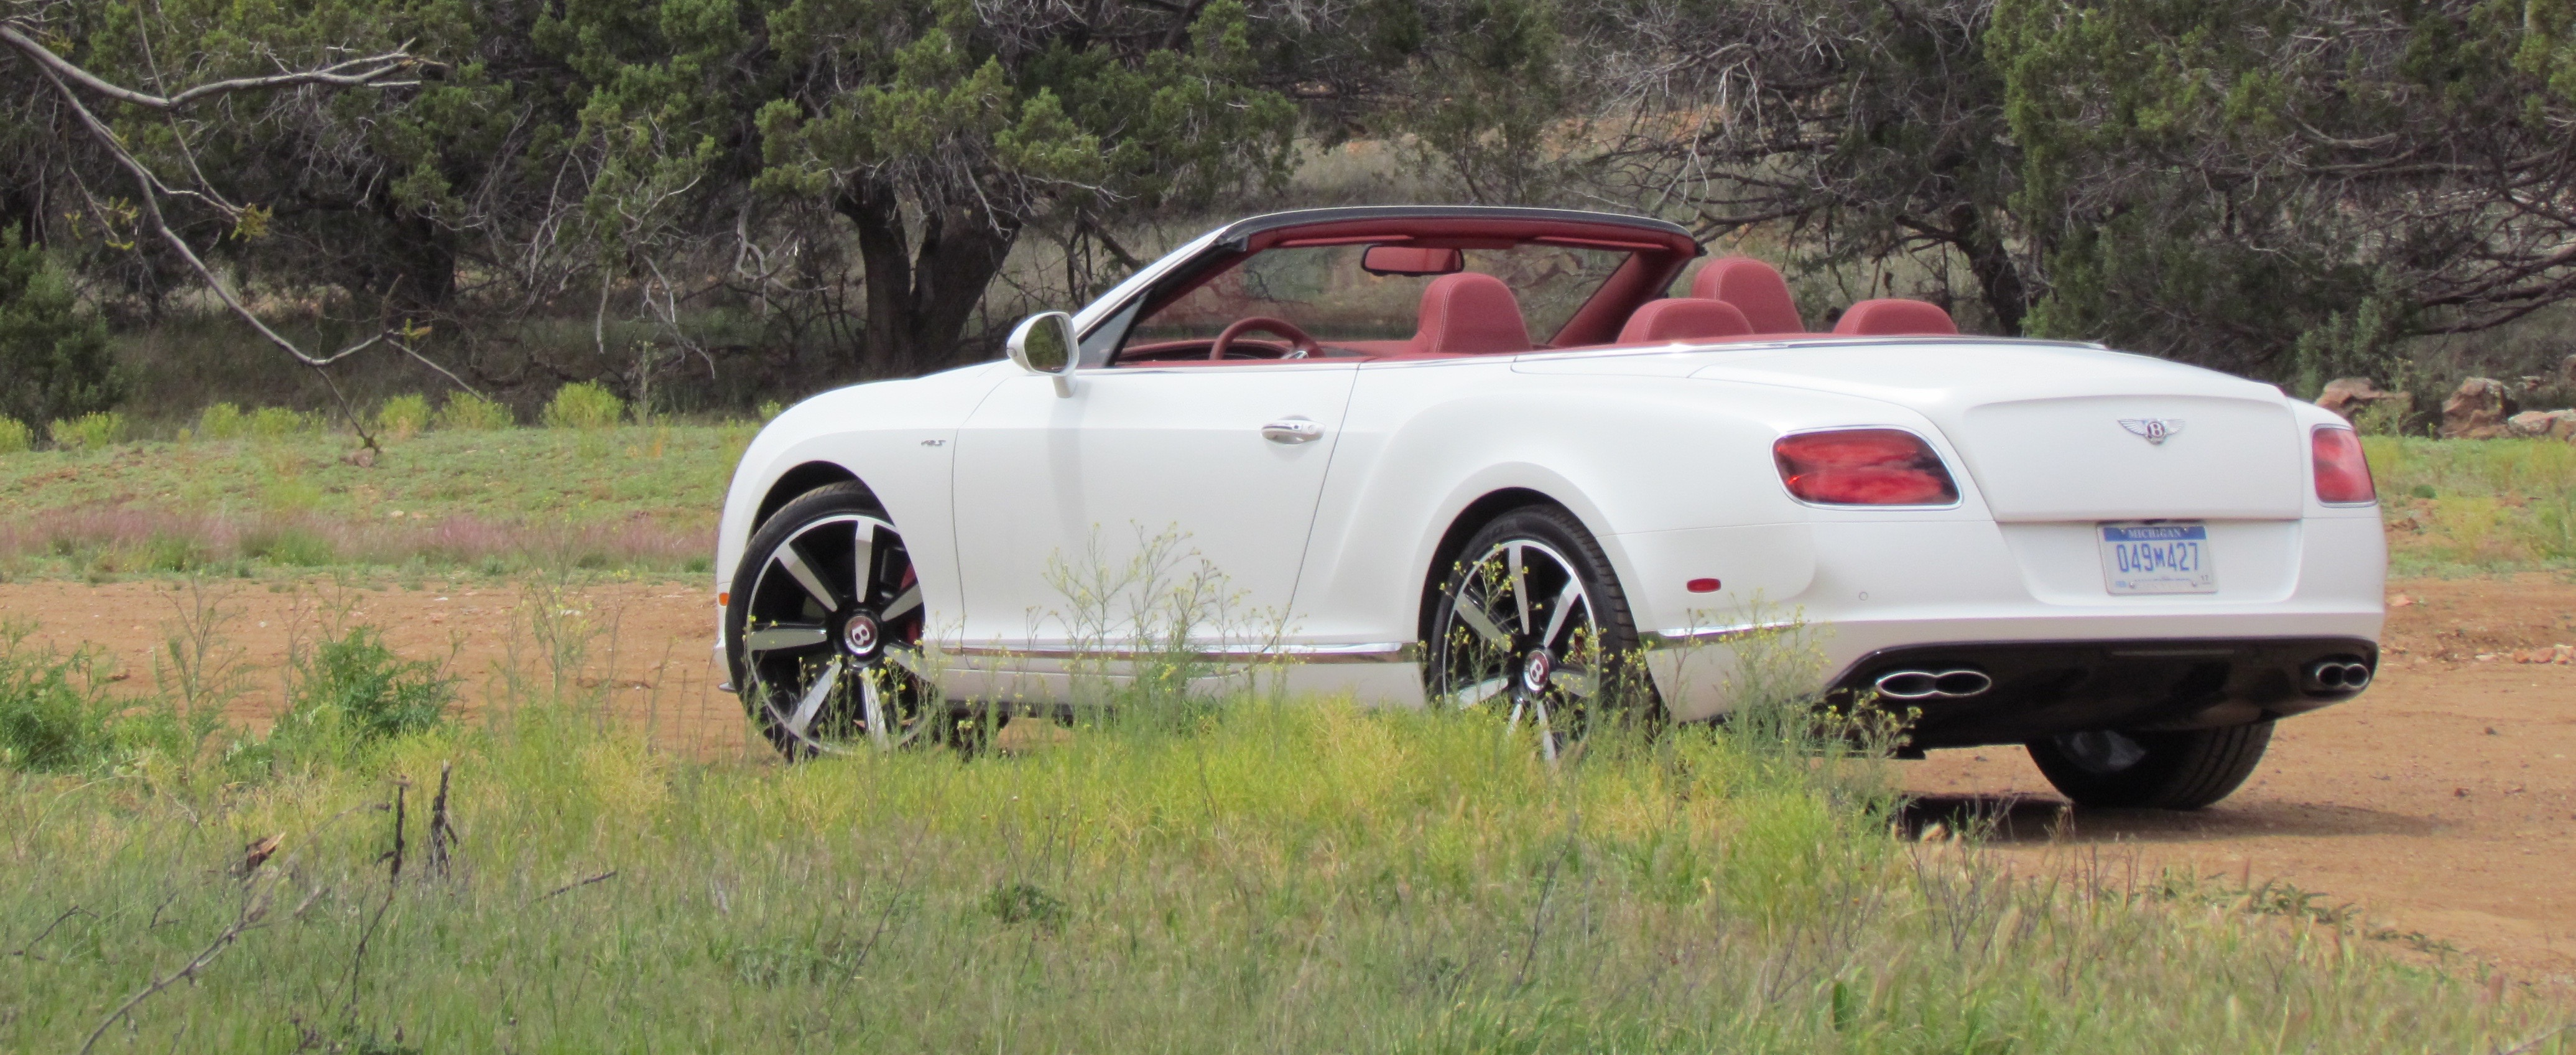 2015 Bentley Continental GT V8 S Is Beautiful From Any Angle | Larry Edsall  Photos